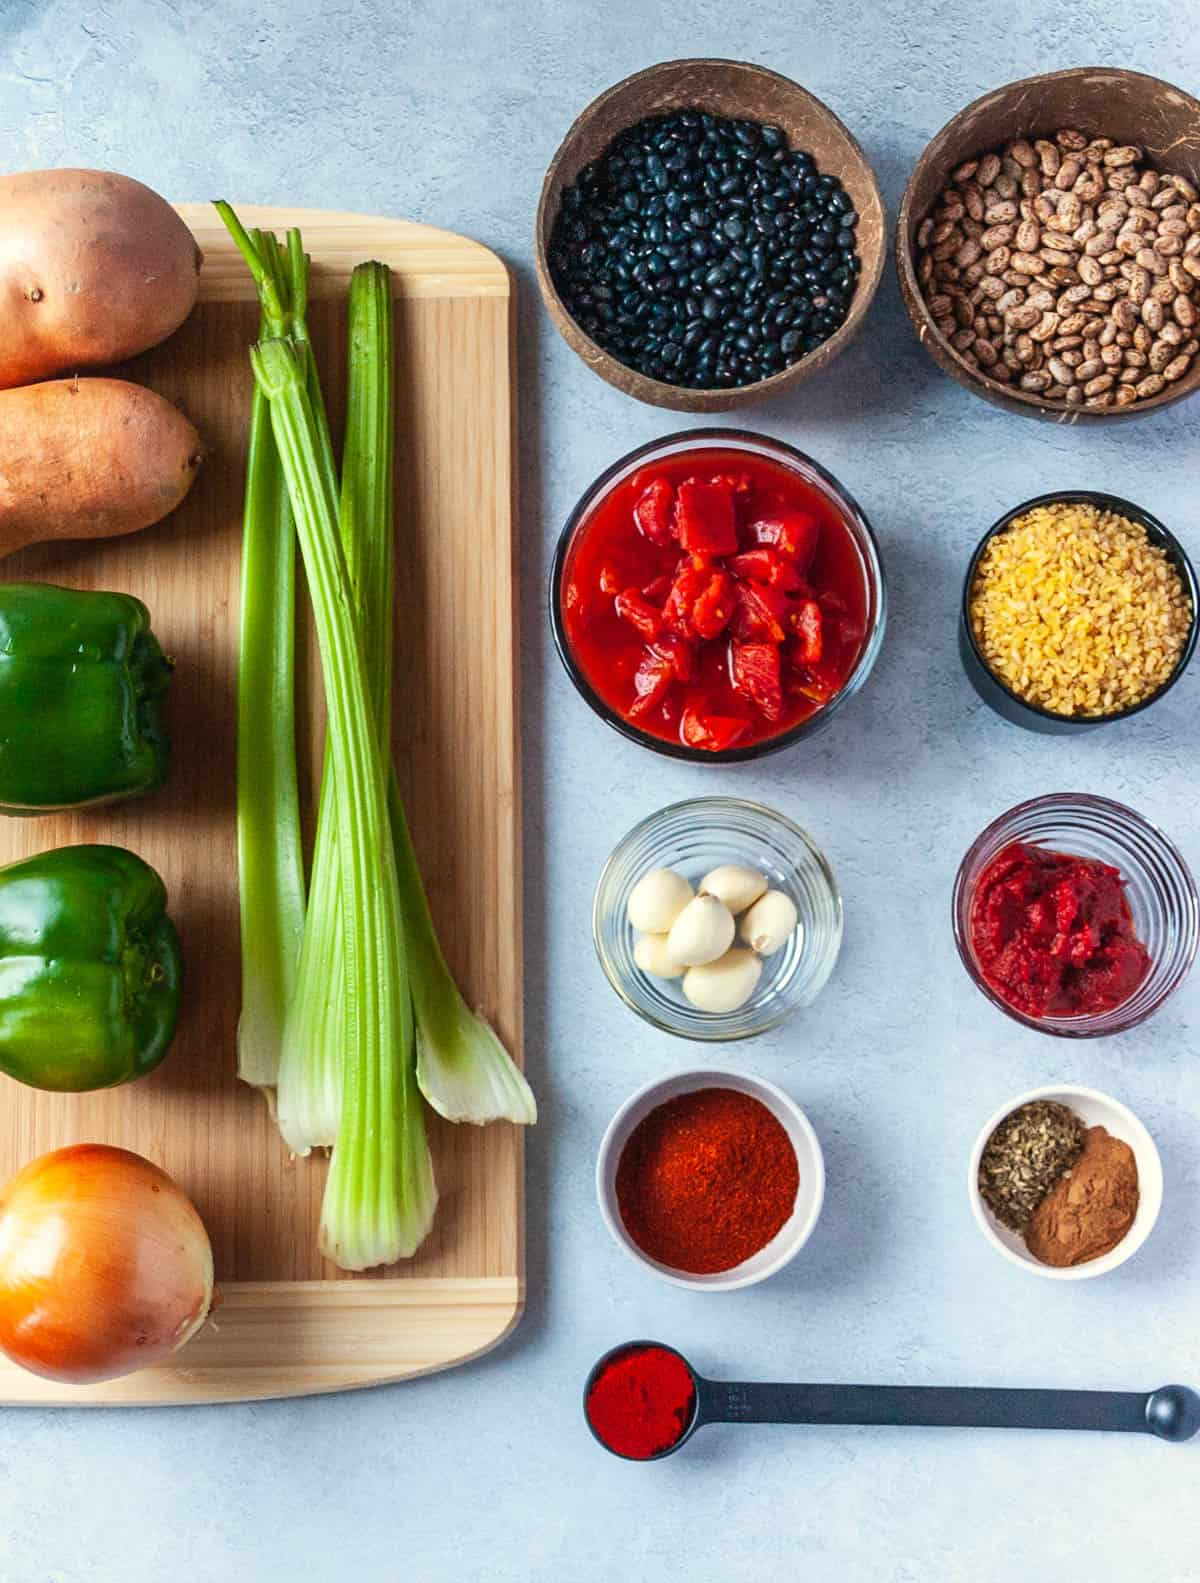 Ingredients needed to make Instant Pot dried bean chili arranged on a countertop